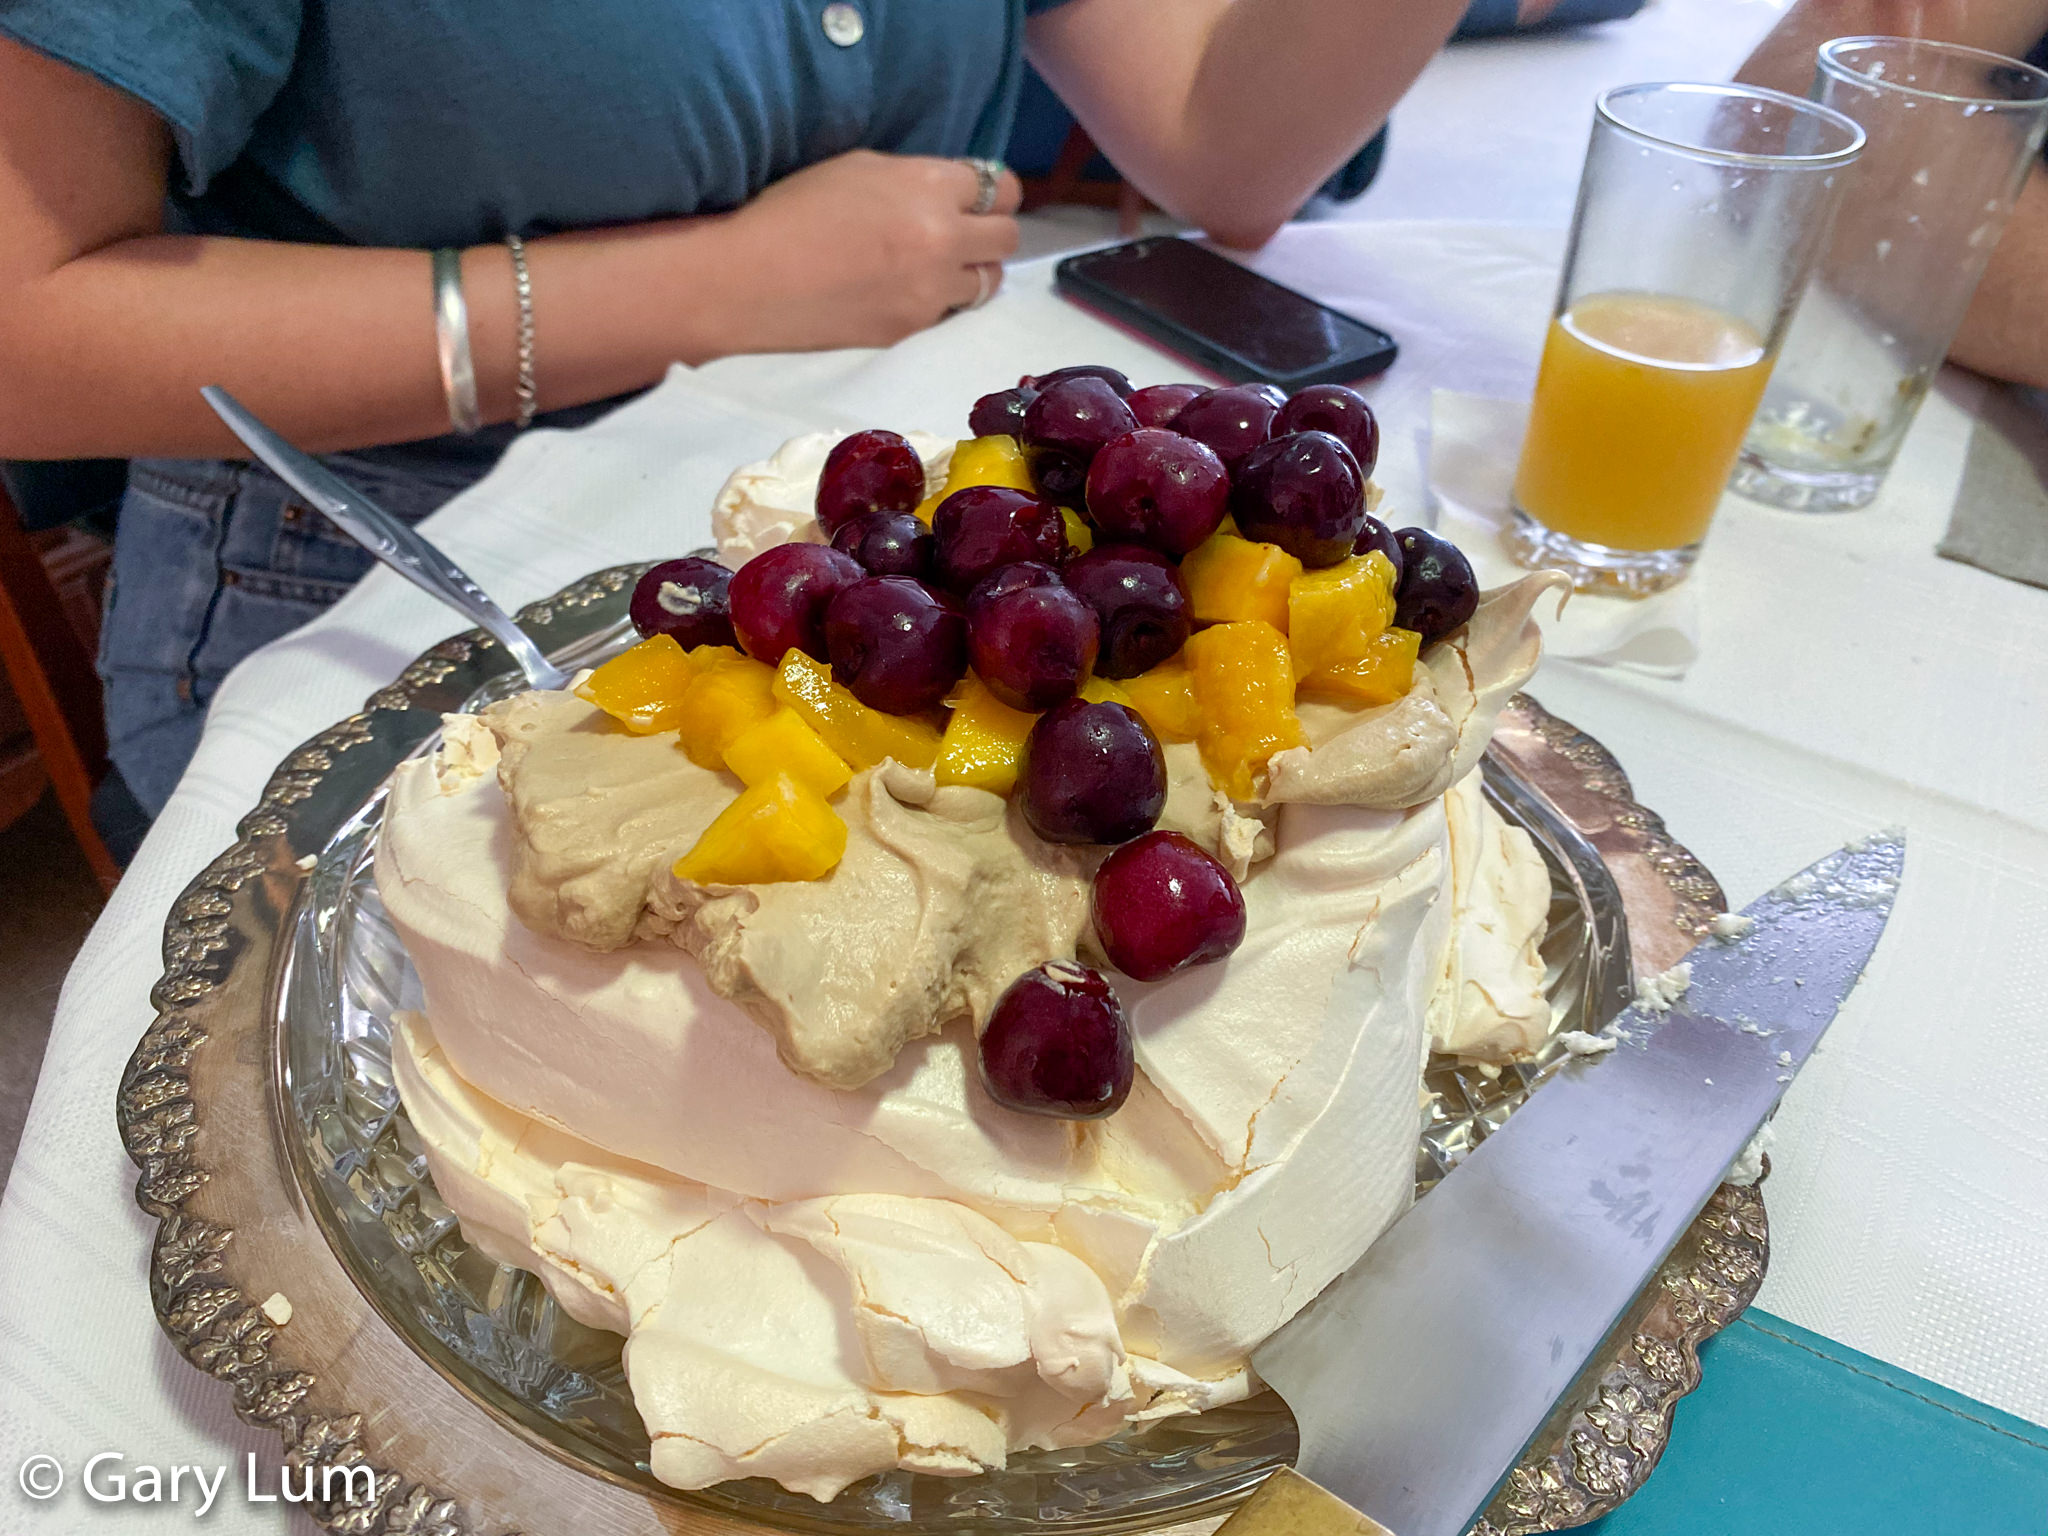 New Year's Day 2020 pavlova with cherries and mango. Gary Lum.